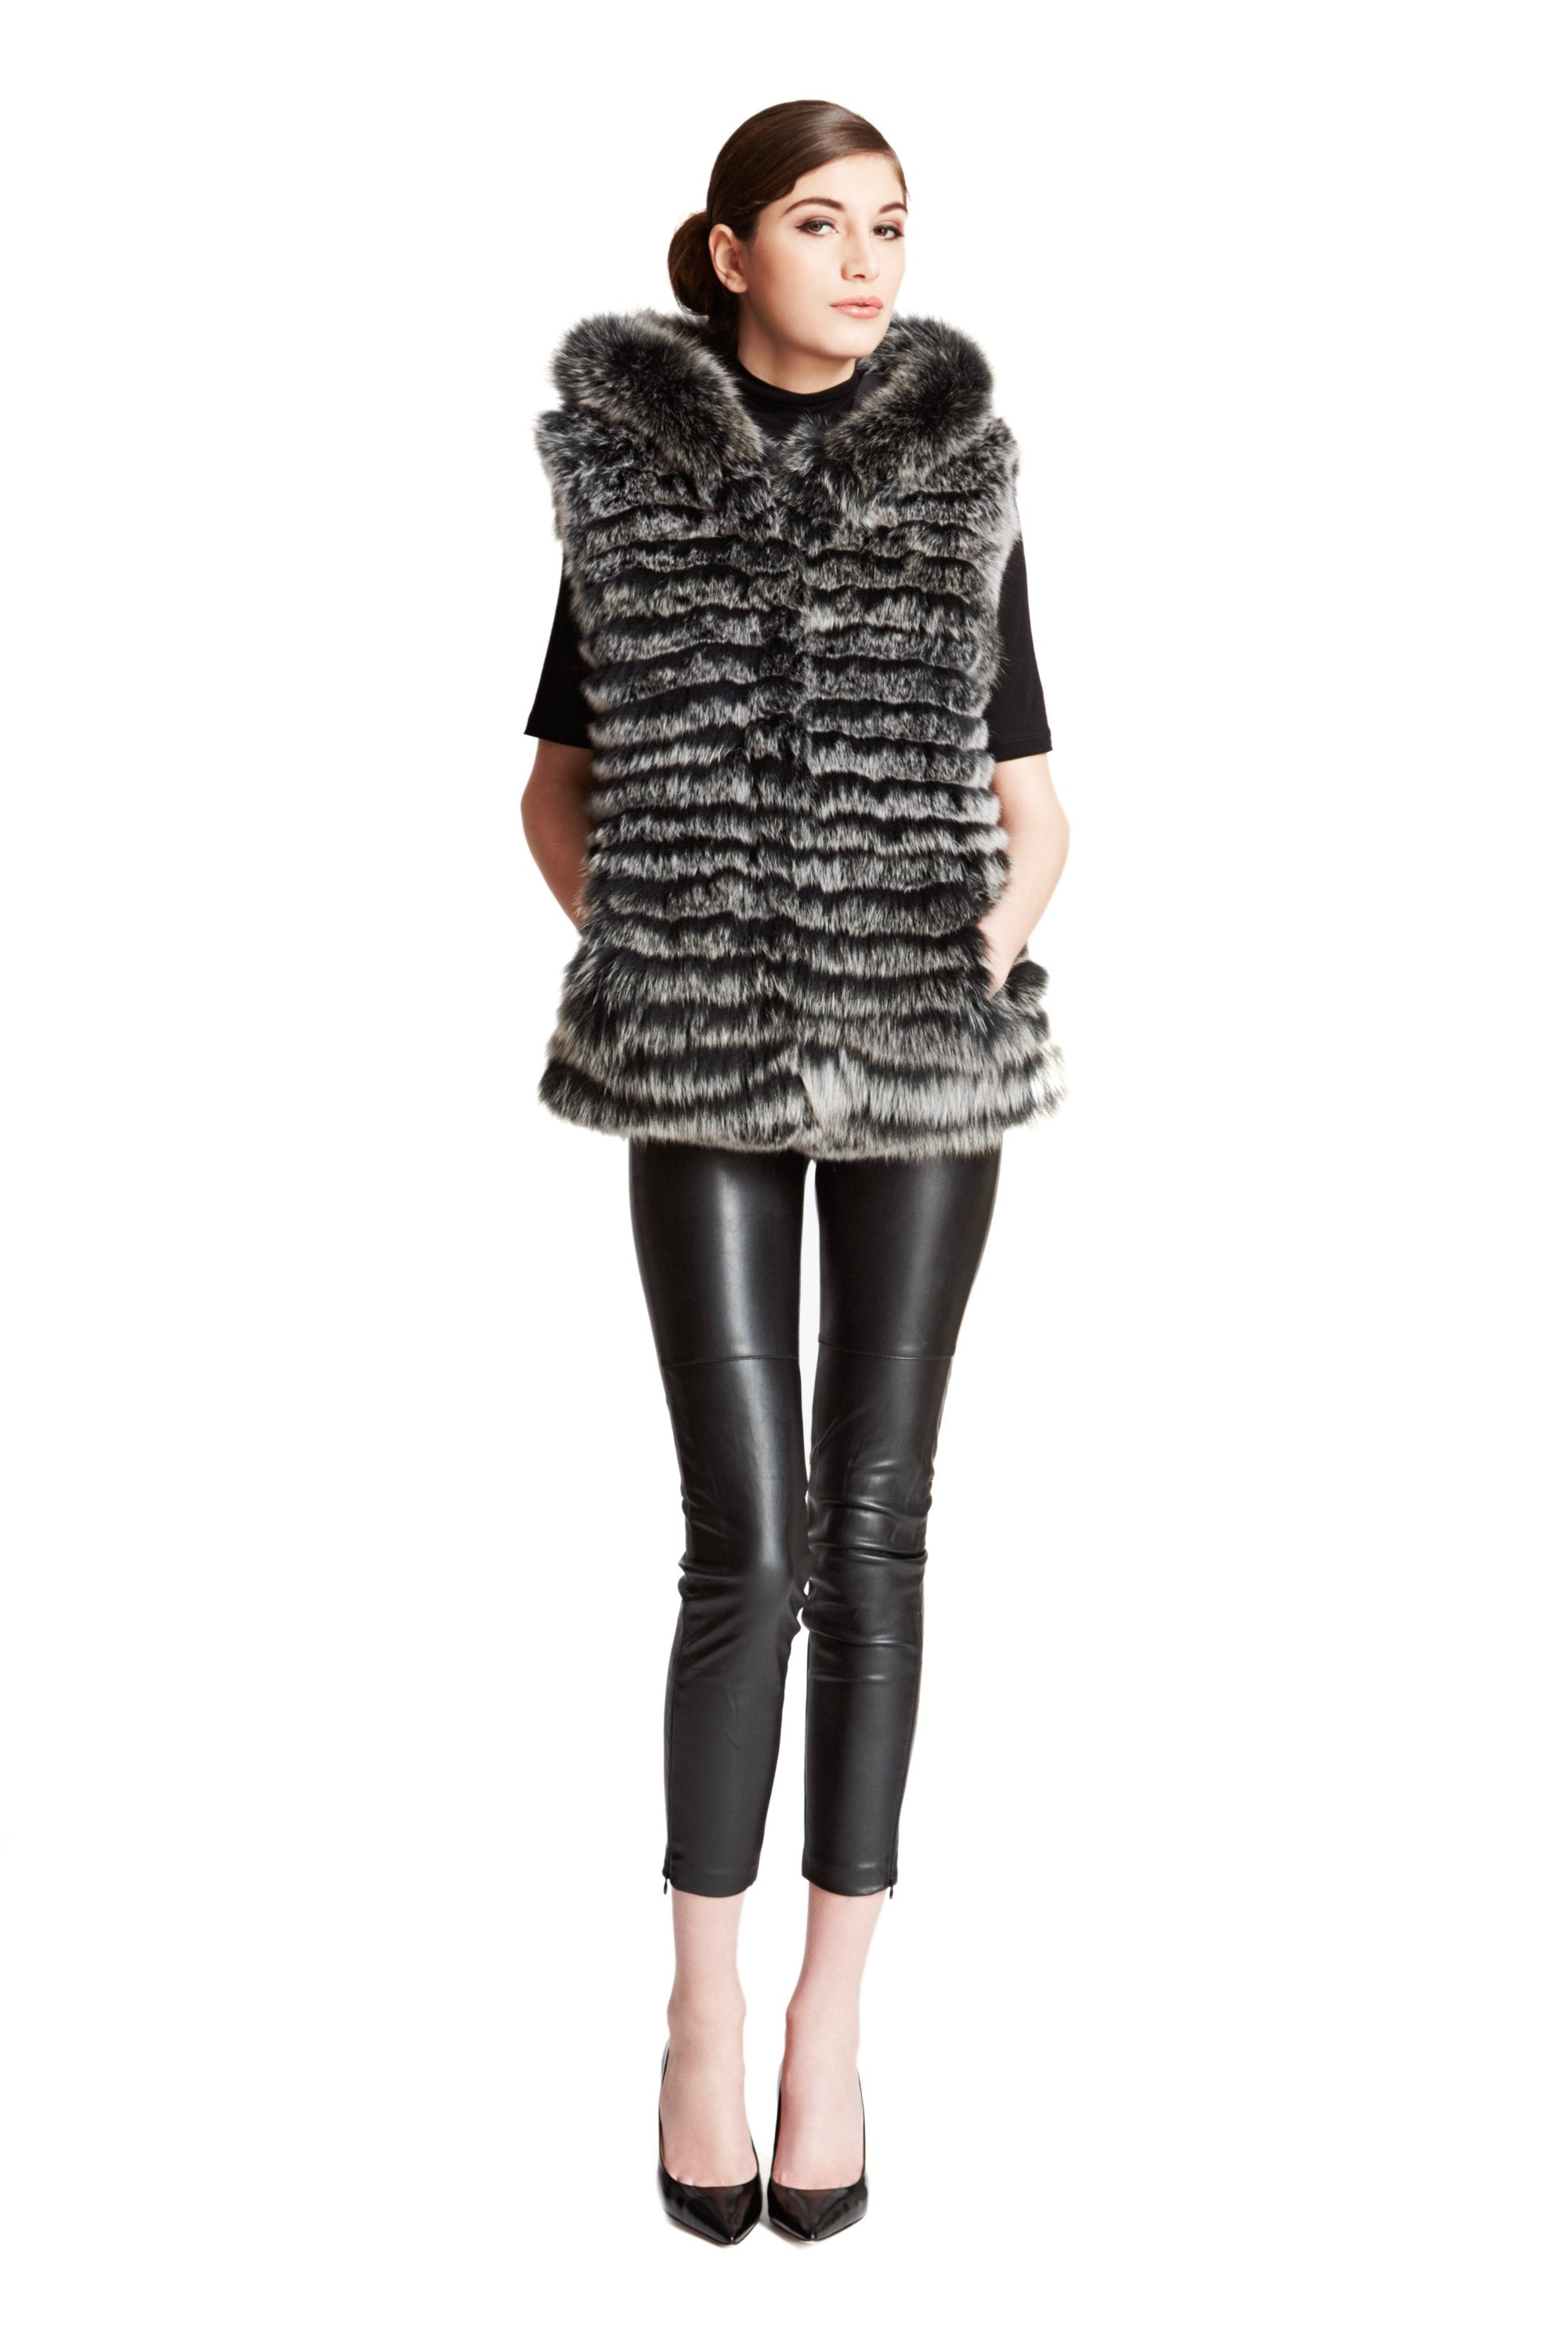 Reversible Micro-Fabric Fox Fur Vest - paulamarie